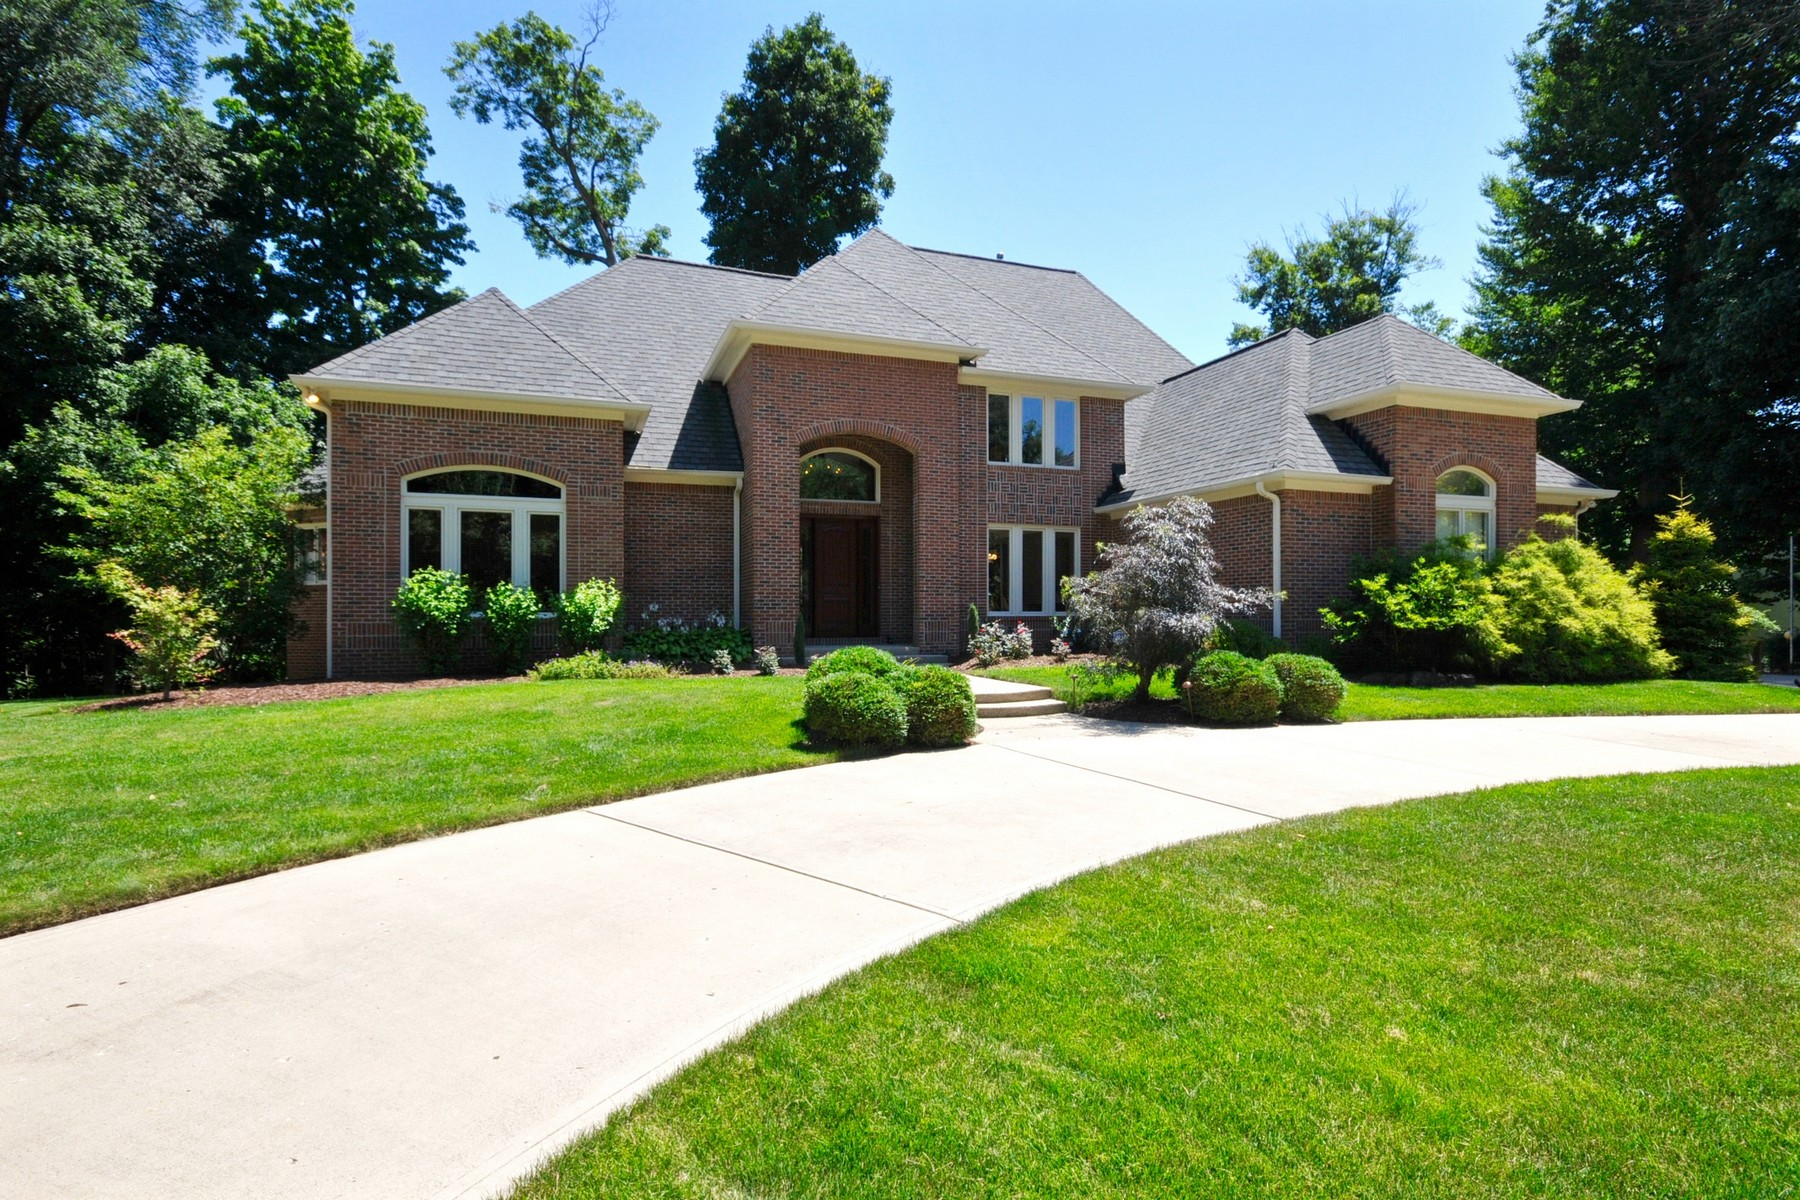 Single Family Home for Sale at Wooded Cul-De-Sac Location 12011 Woods Bay Court Carmel, Indiana 46033 United States